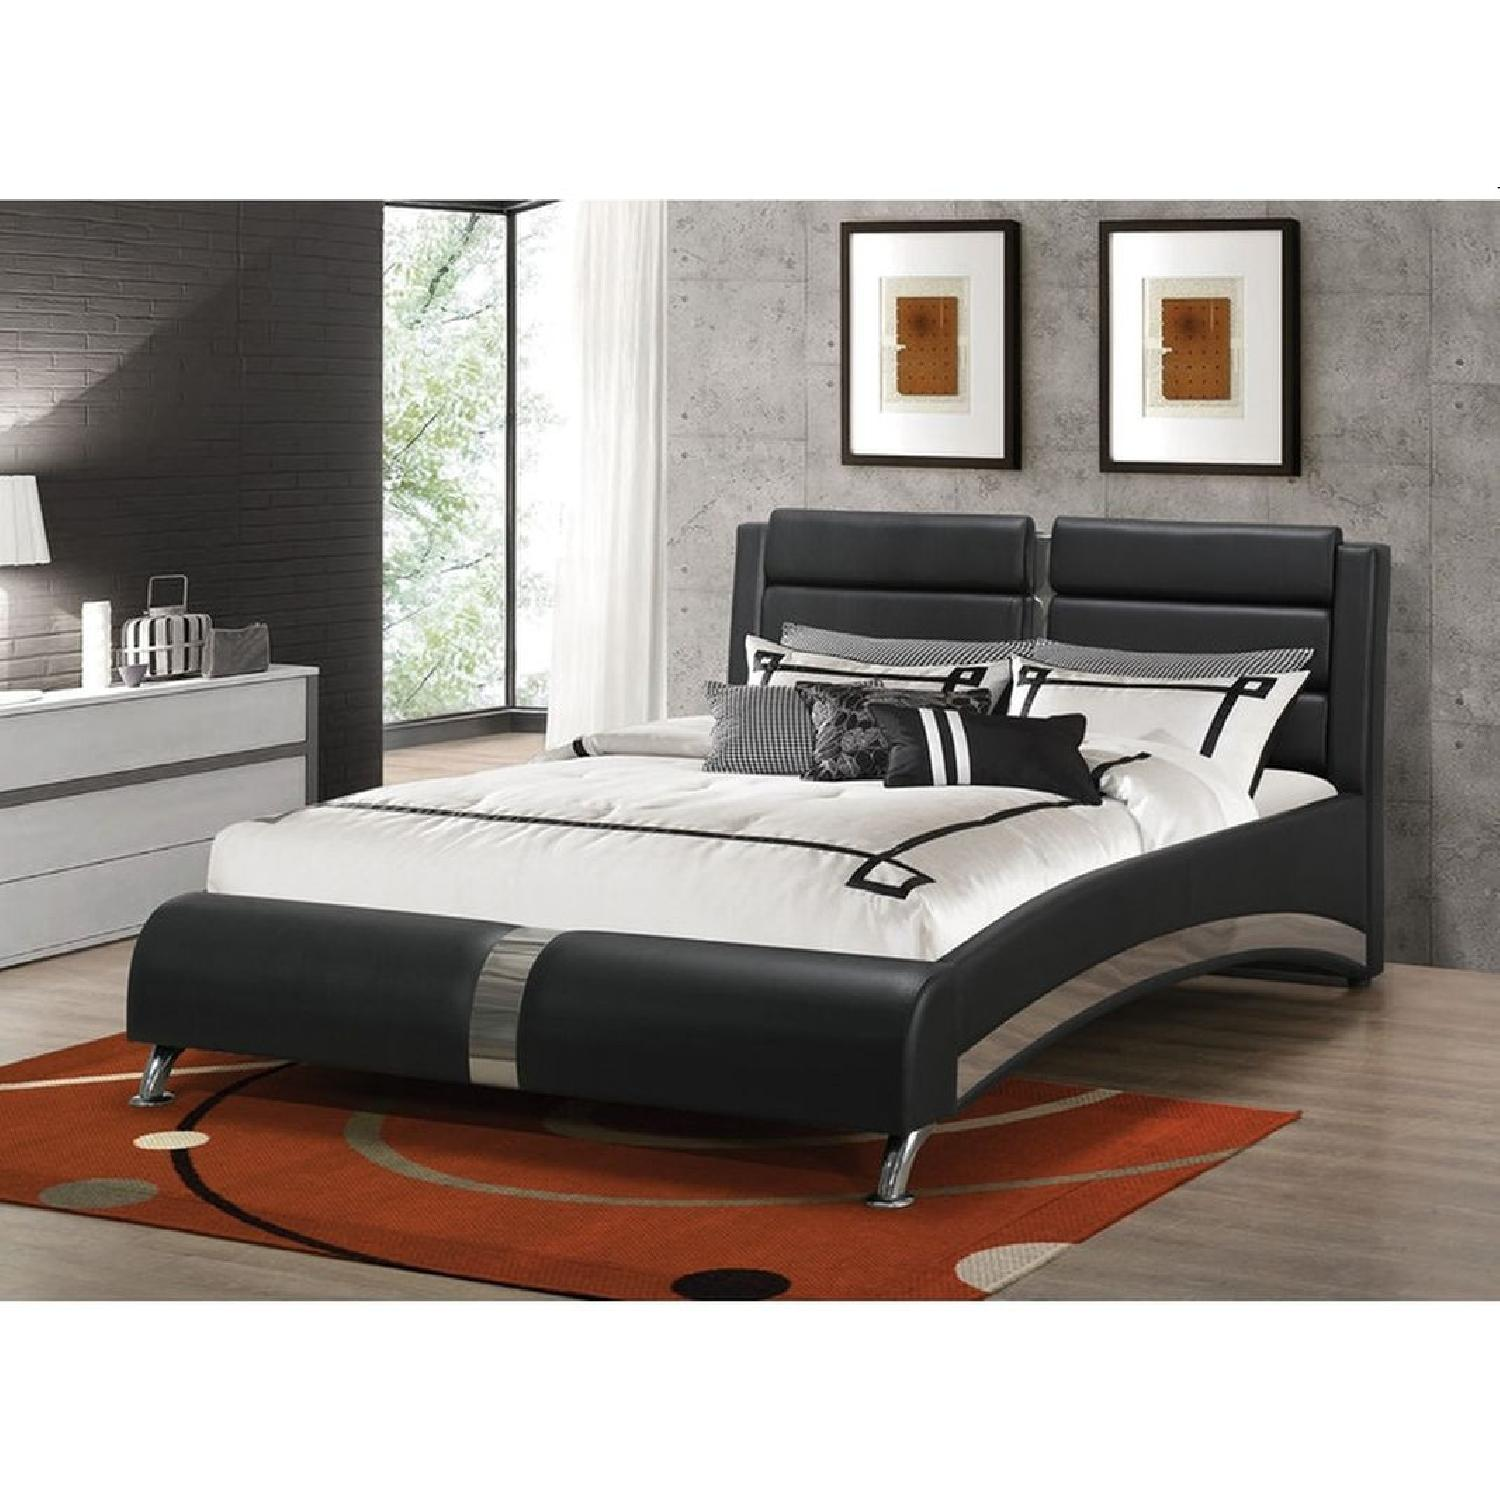 King Platform Bed In Black Leatherette w/ Chrome Accent - image-3